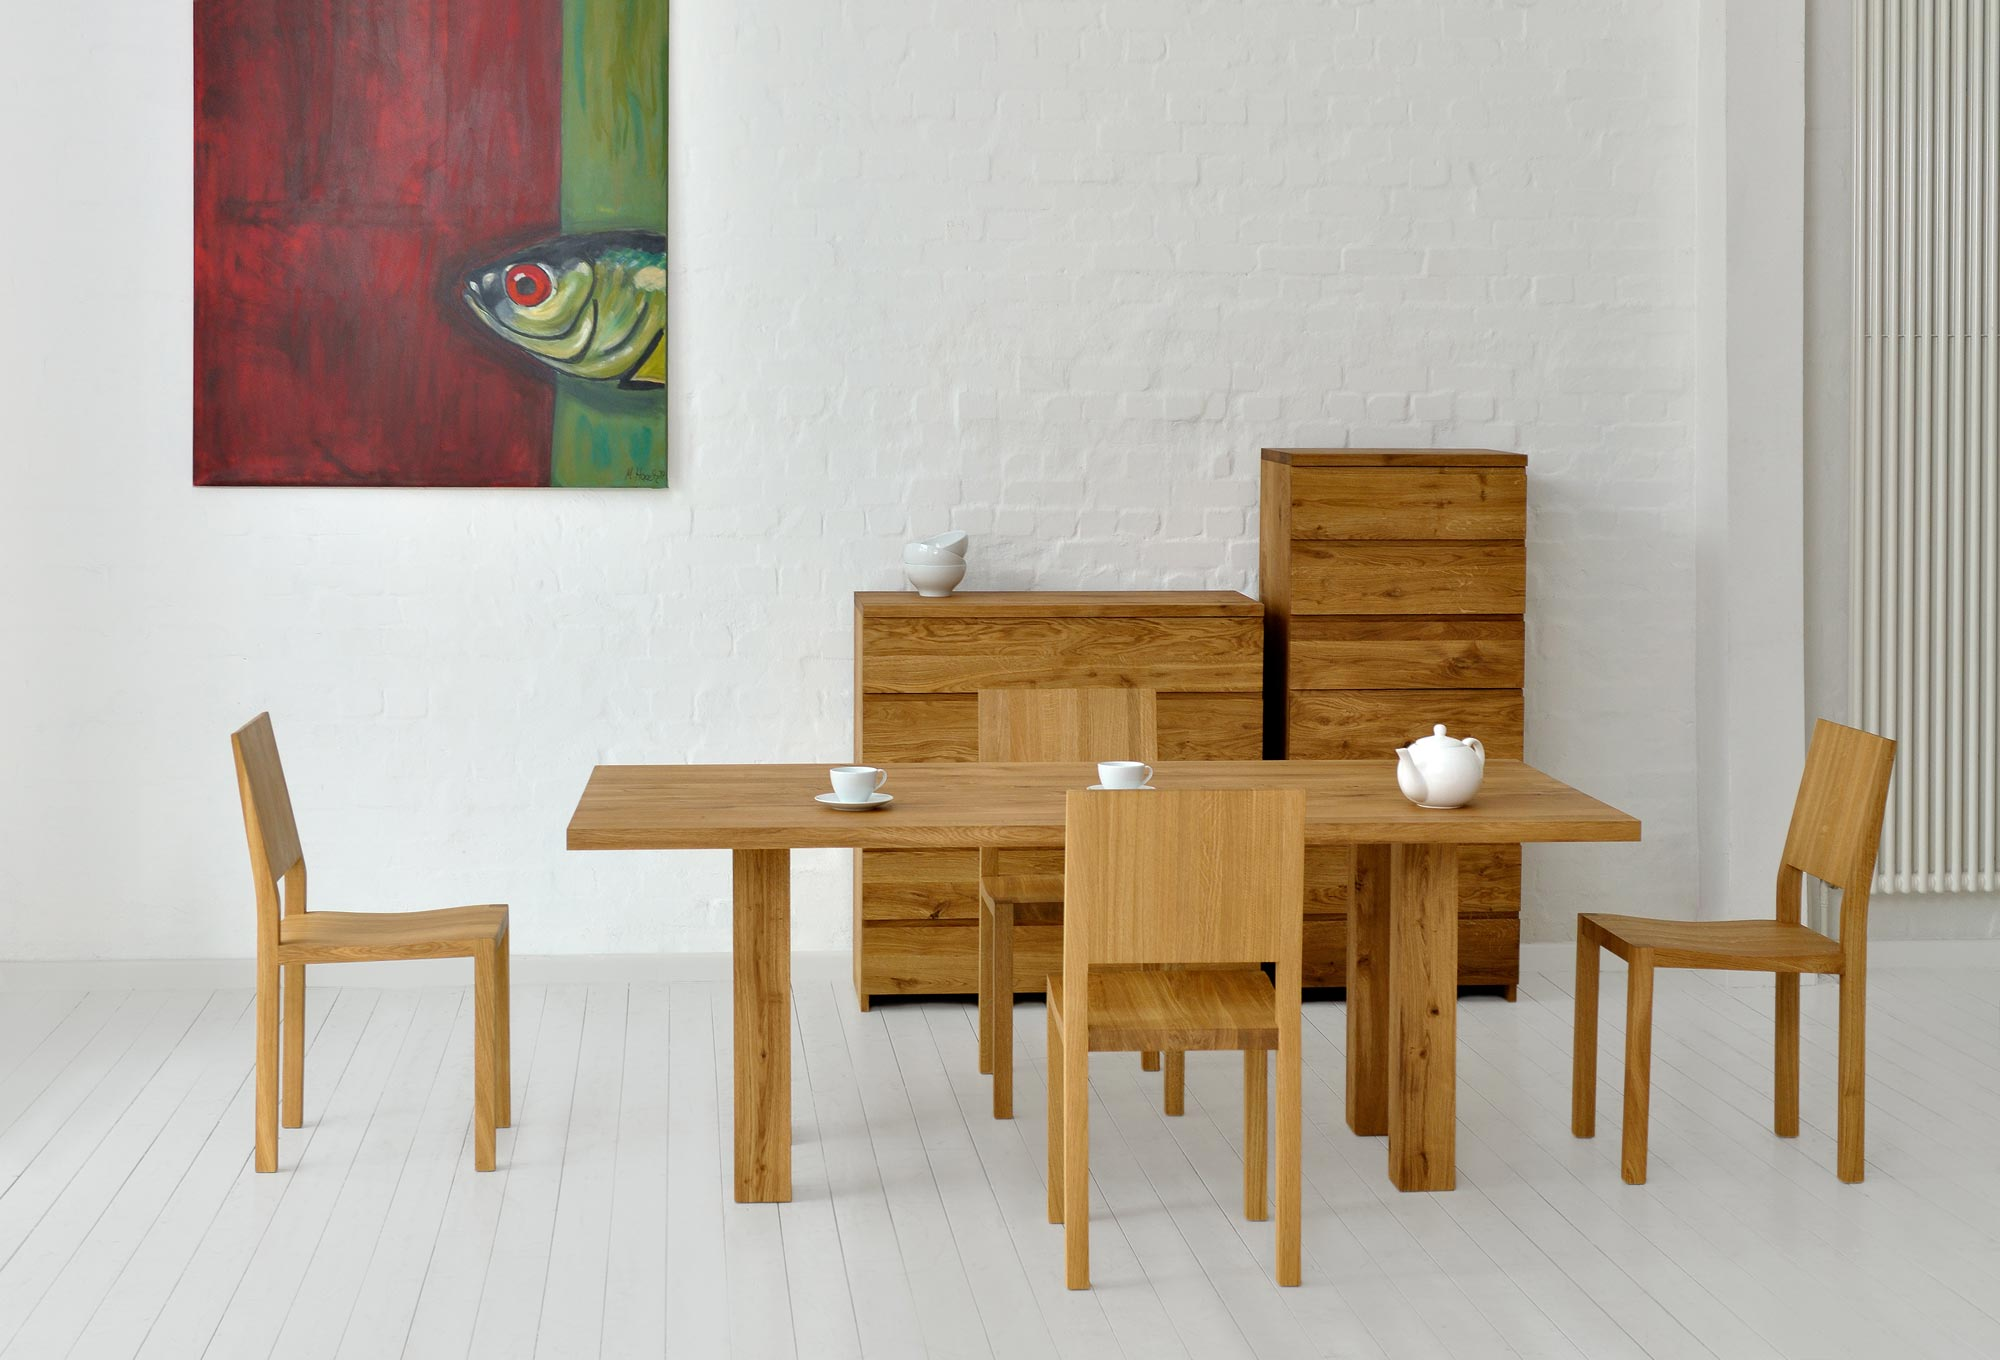 Frameless Table DUCK 2790 custom made in solid wood by vitamin design